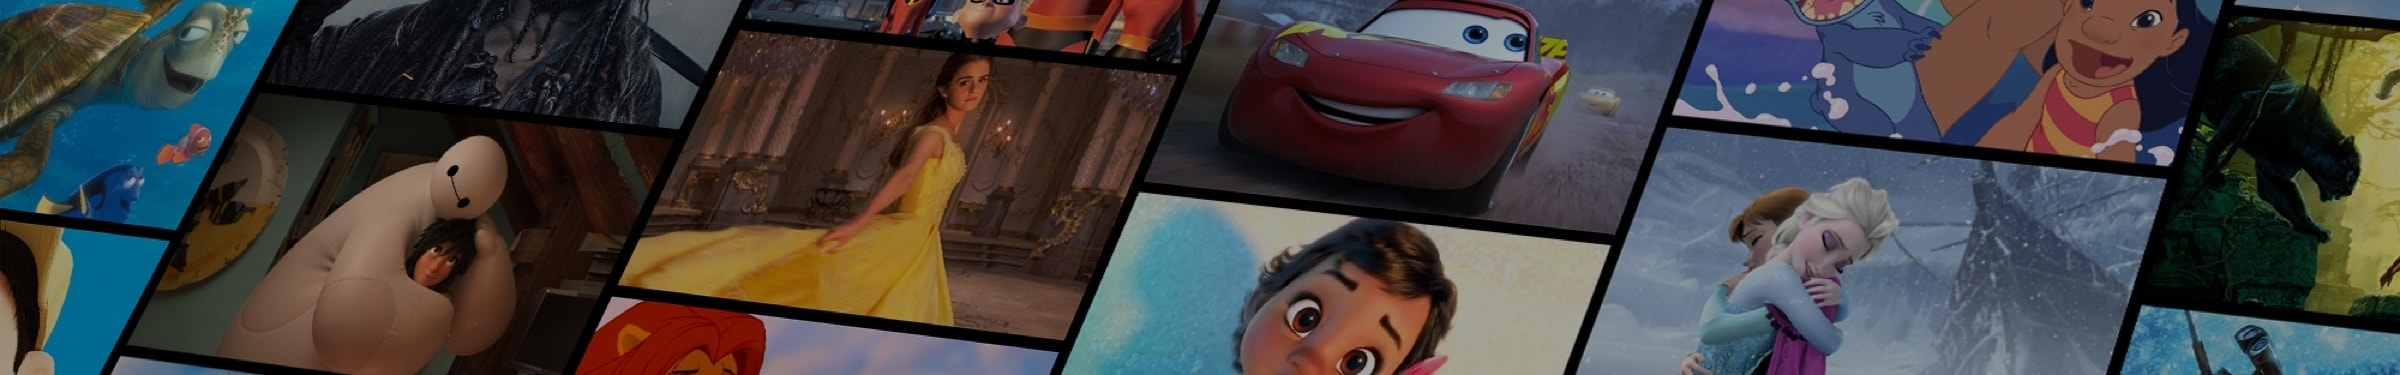 Disney | Watch Disney and Pixar Movies at home